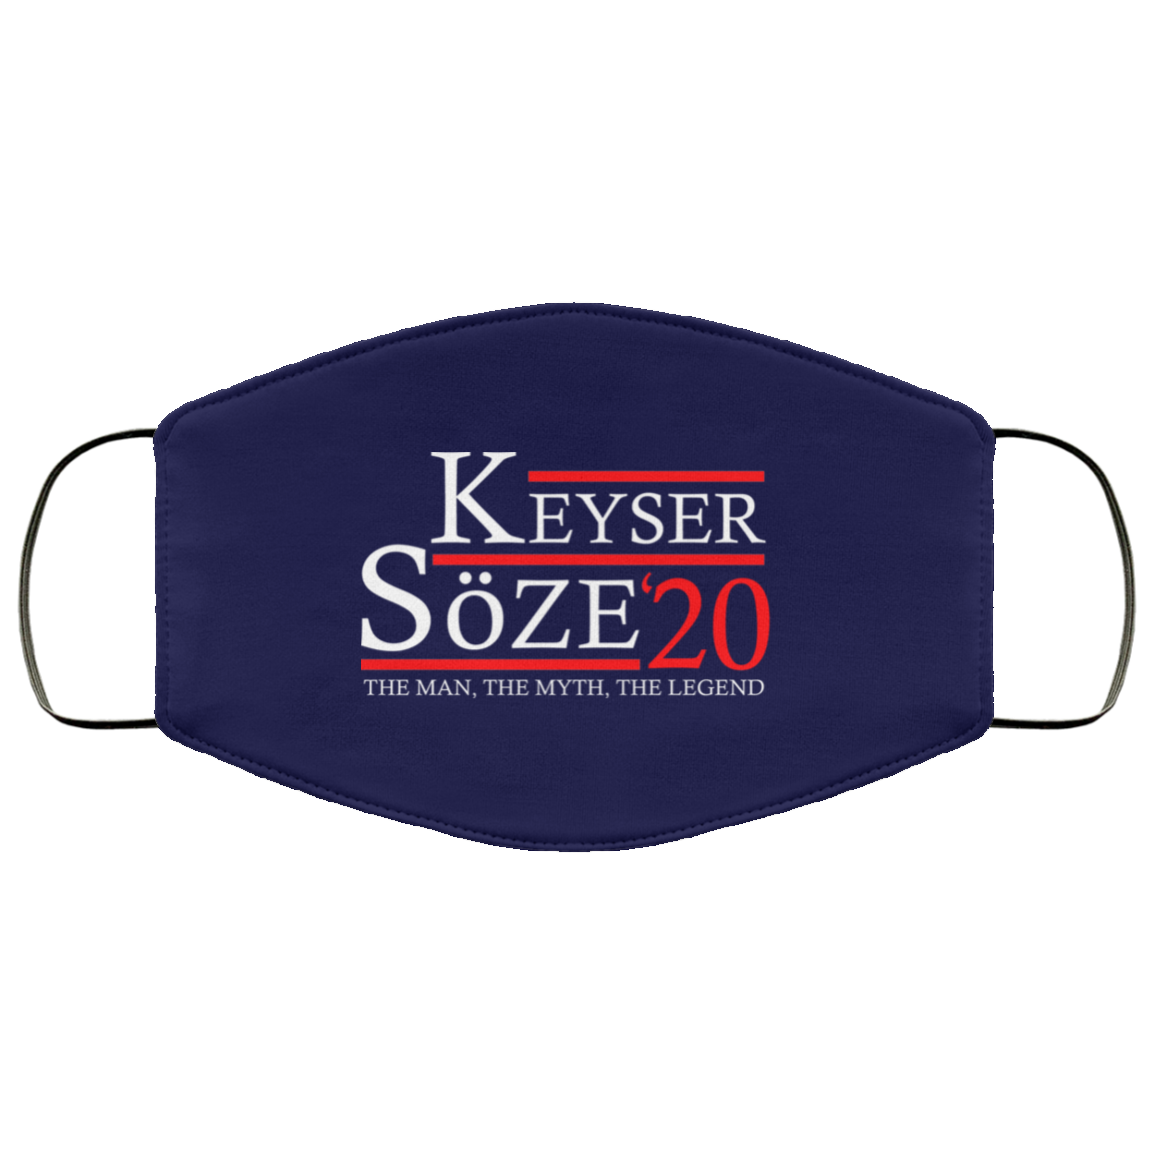 Keyser Soze 20 Face Mask (ear loops)